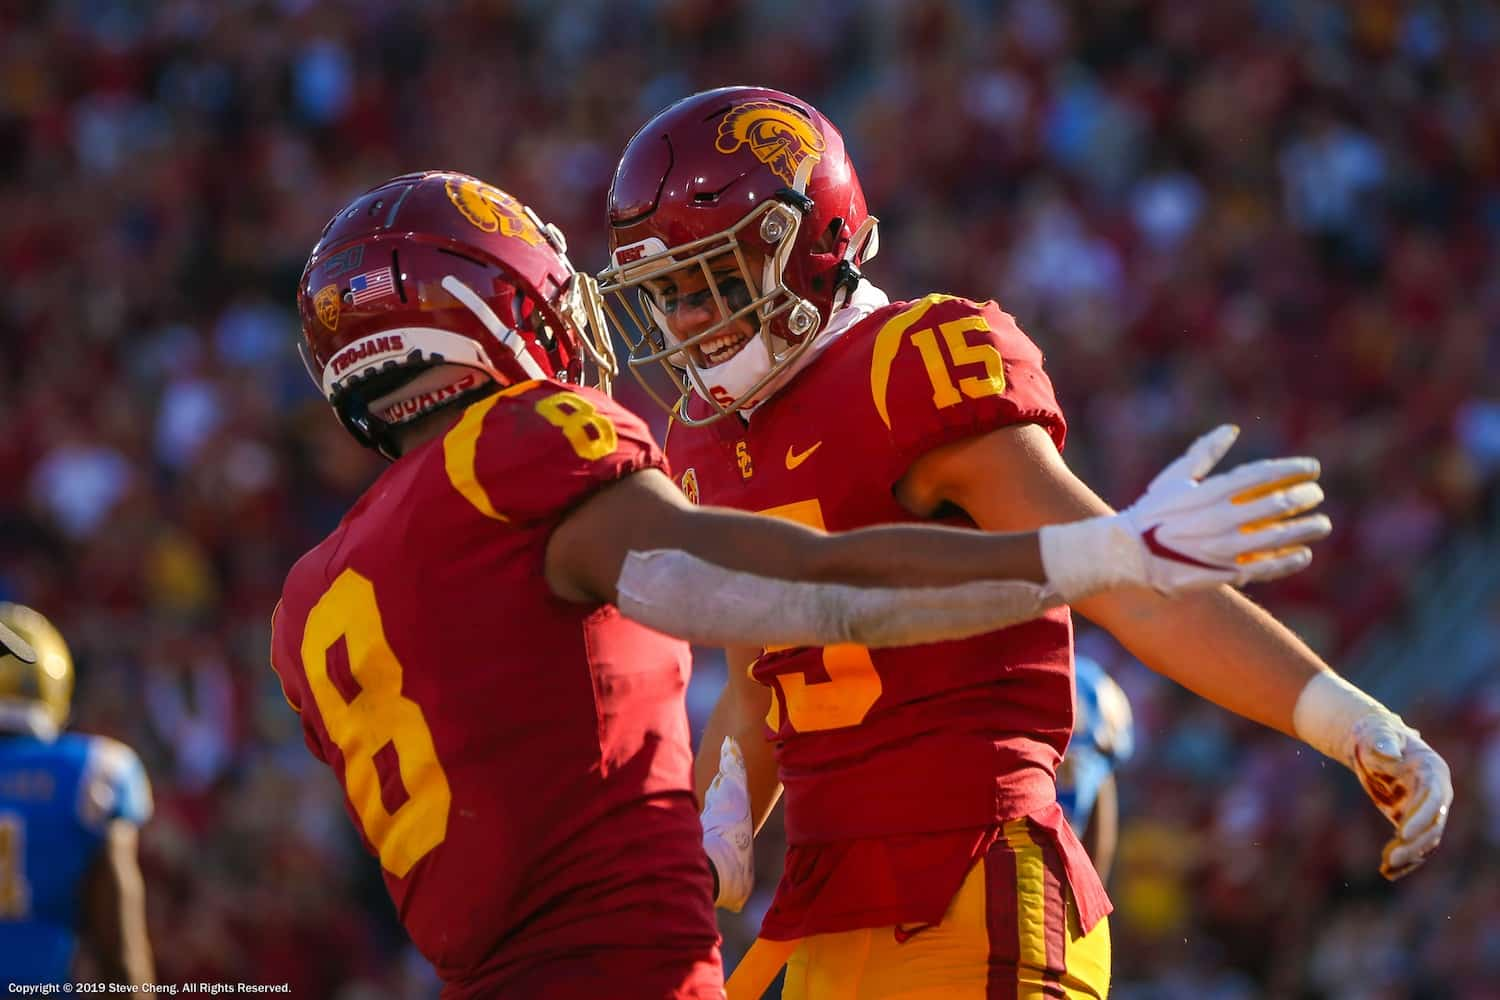 USC Trojans In The NFL: Vera-Tucker To Jets In 1st Round, 4 Others Drafted On Day 3